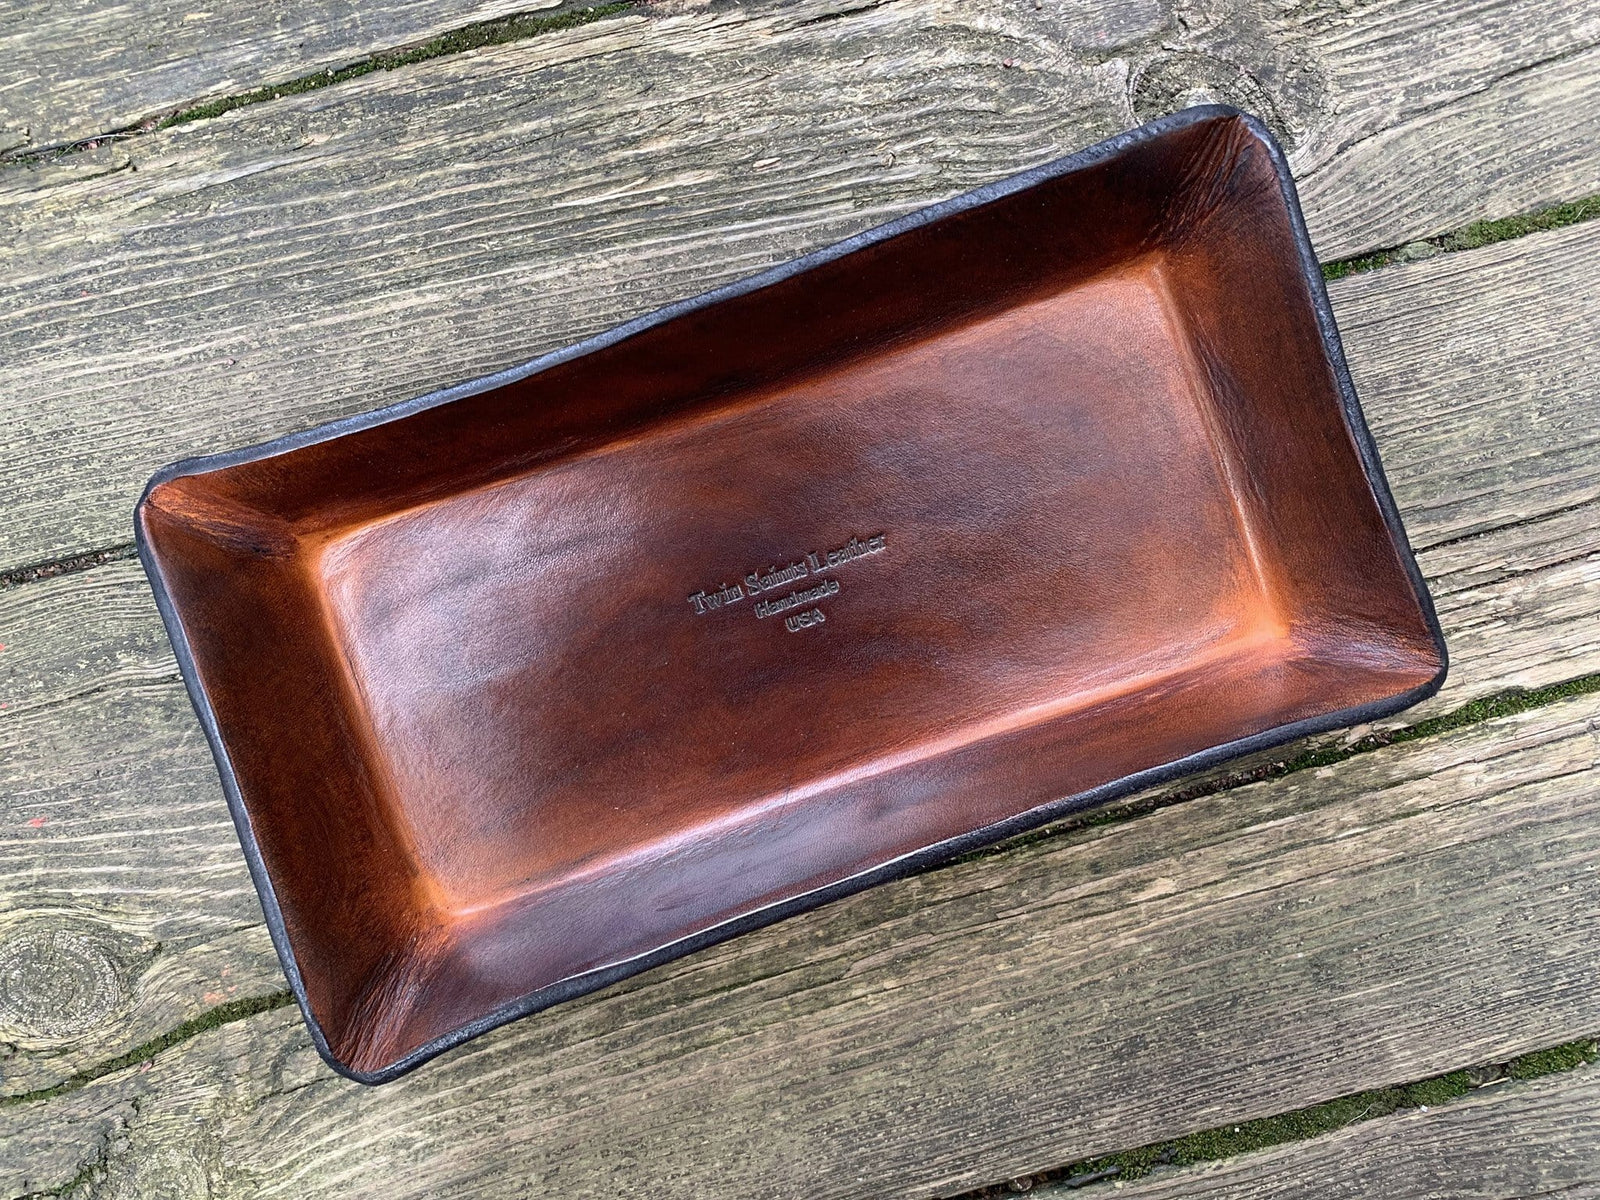 Gifts for Men Desk Organizer Catchall Tray Twin Saints Leather Logo Leather Tray Made in the USA. Leather Valet Tray